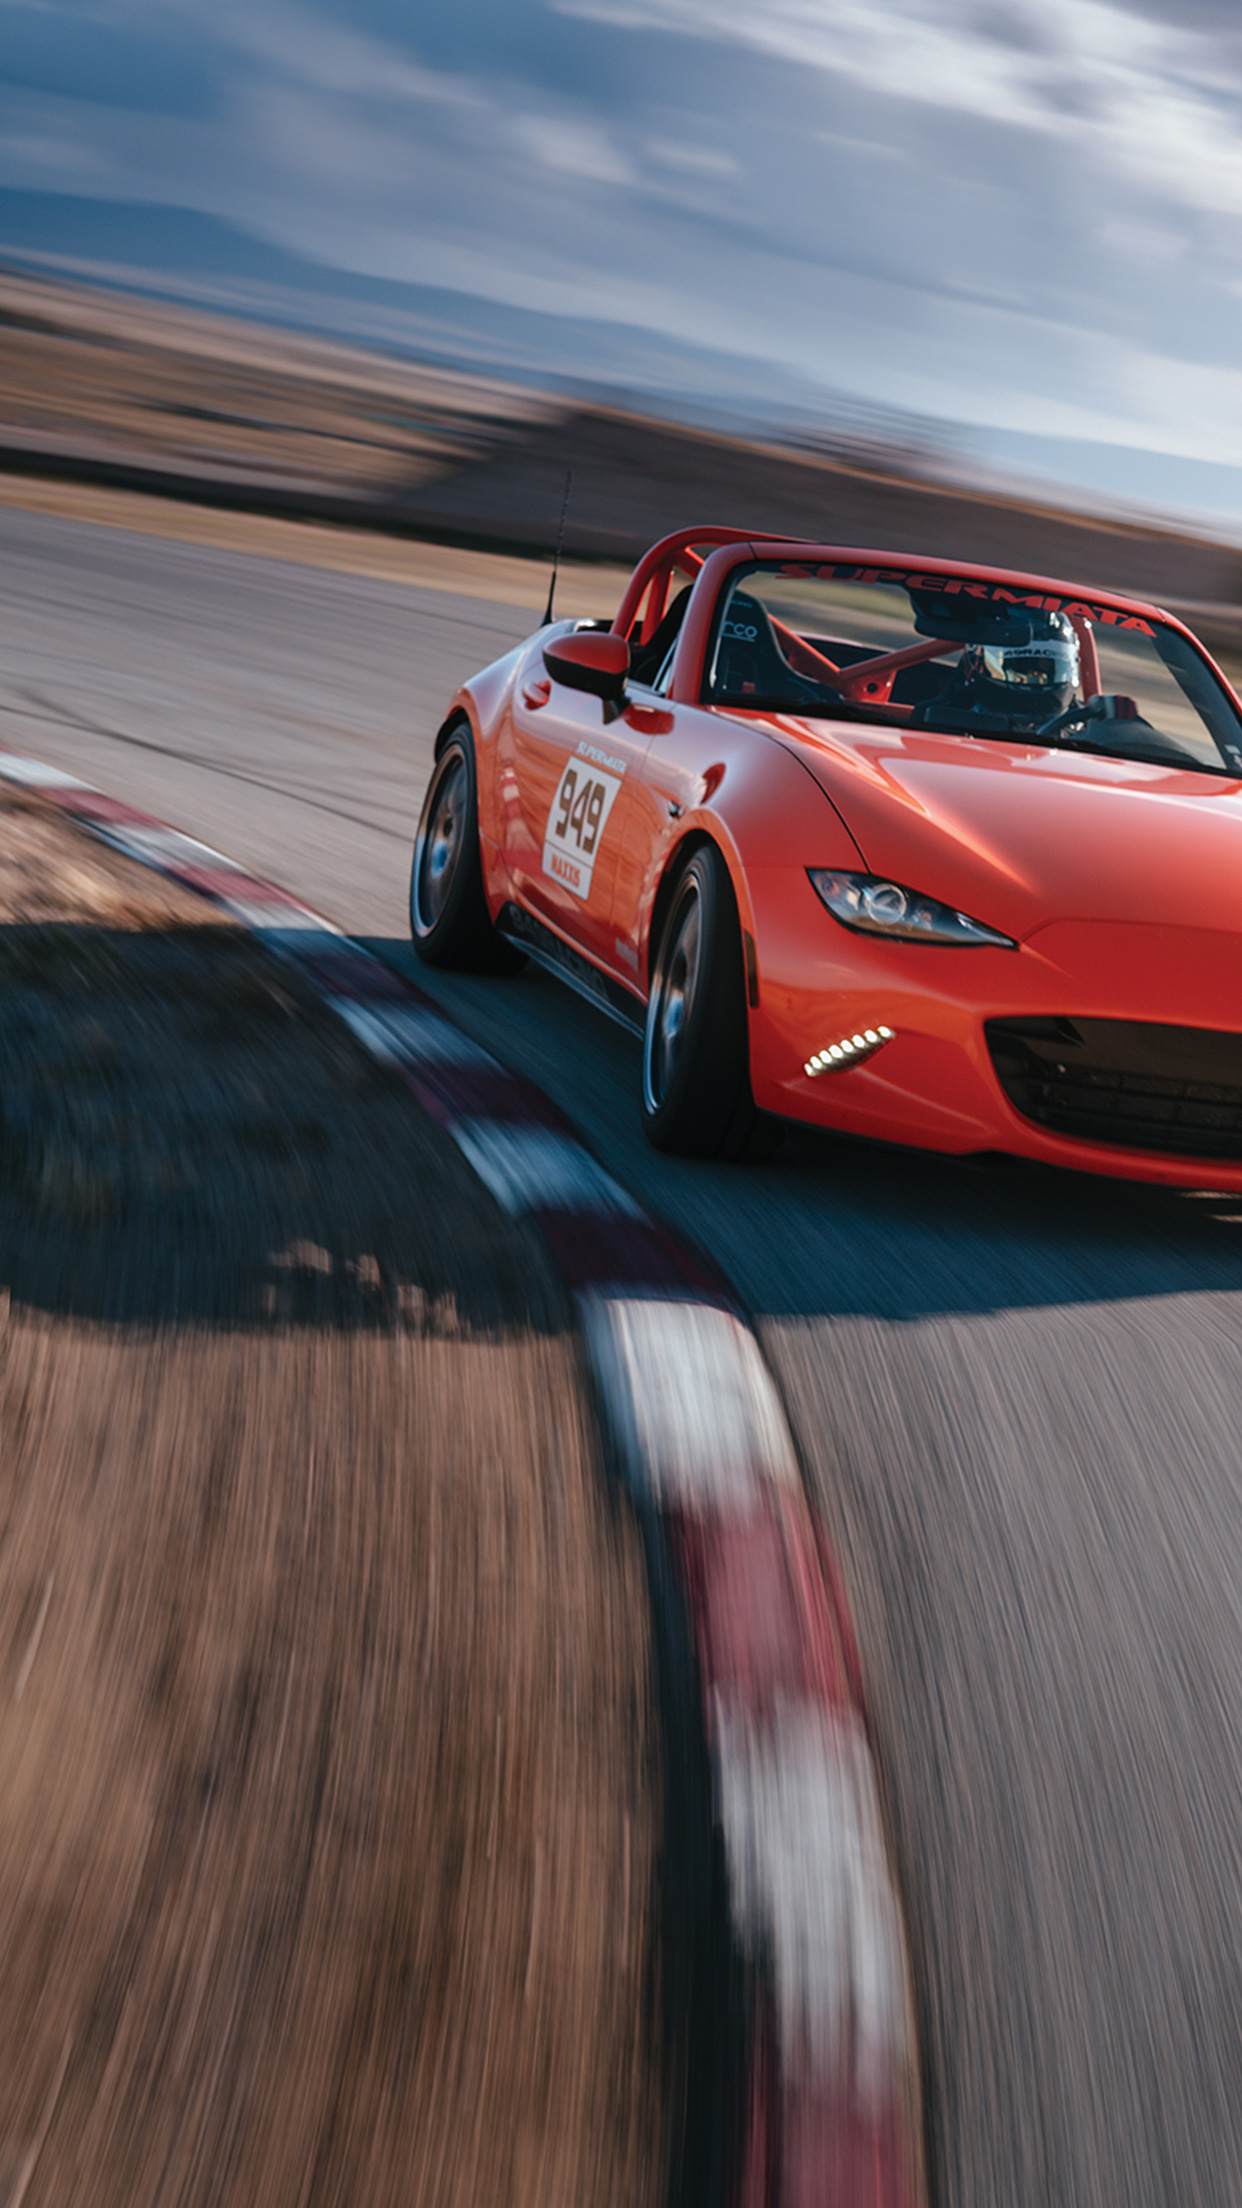 Car on racetrack with Maxxis Tires for marketing content campaign